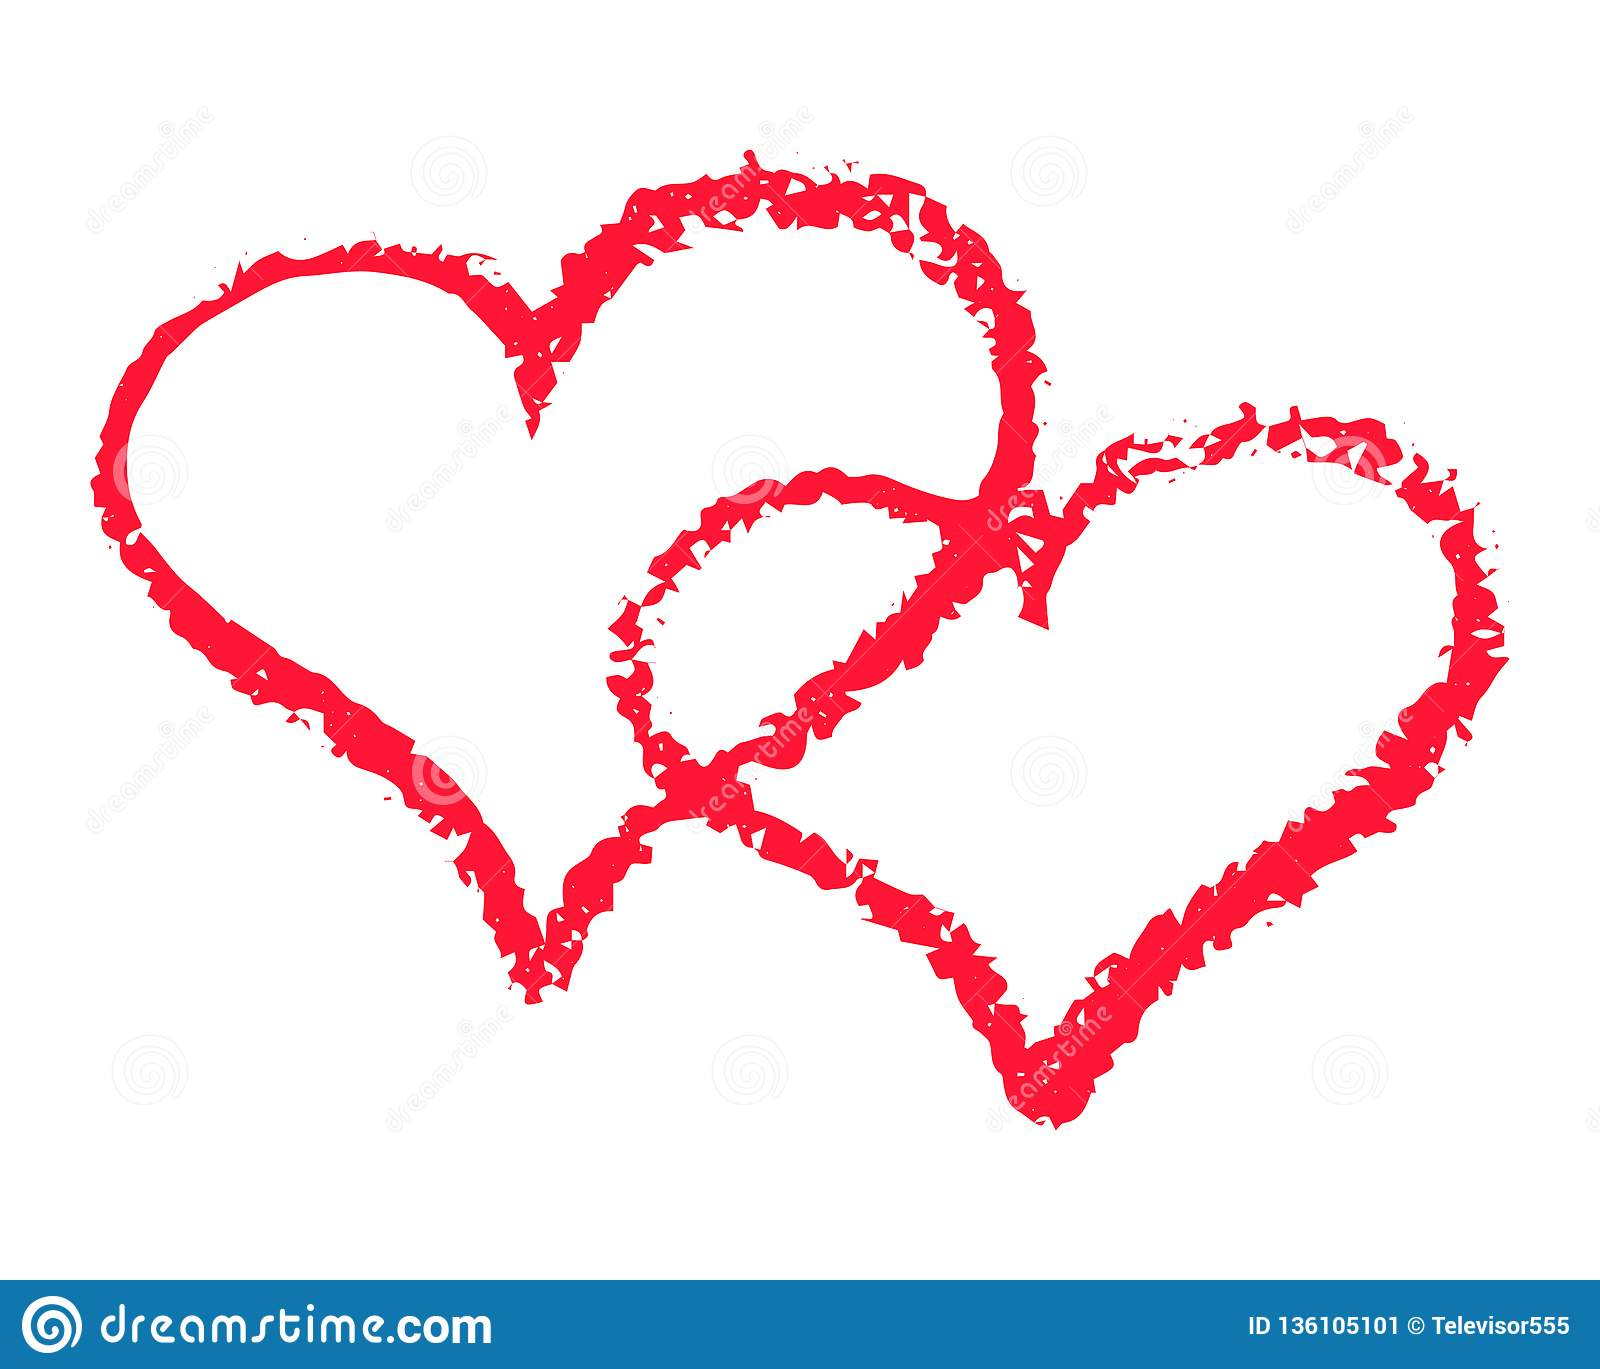 Two Red Hearts Outline Vector Illustration On White Background. St.